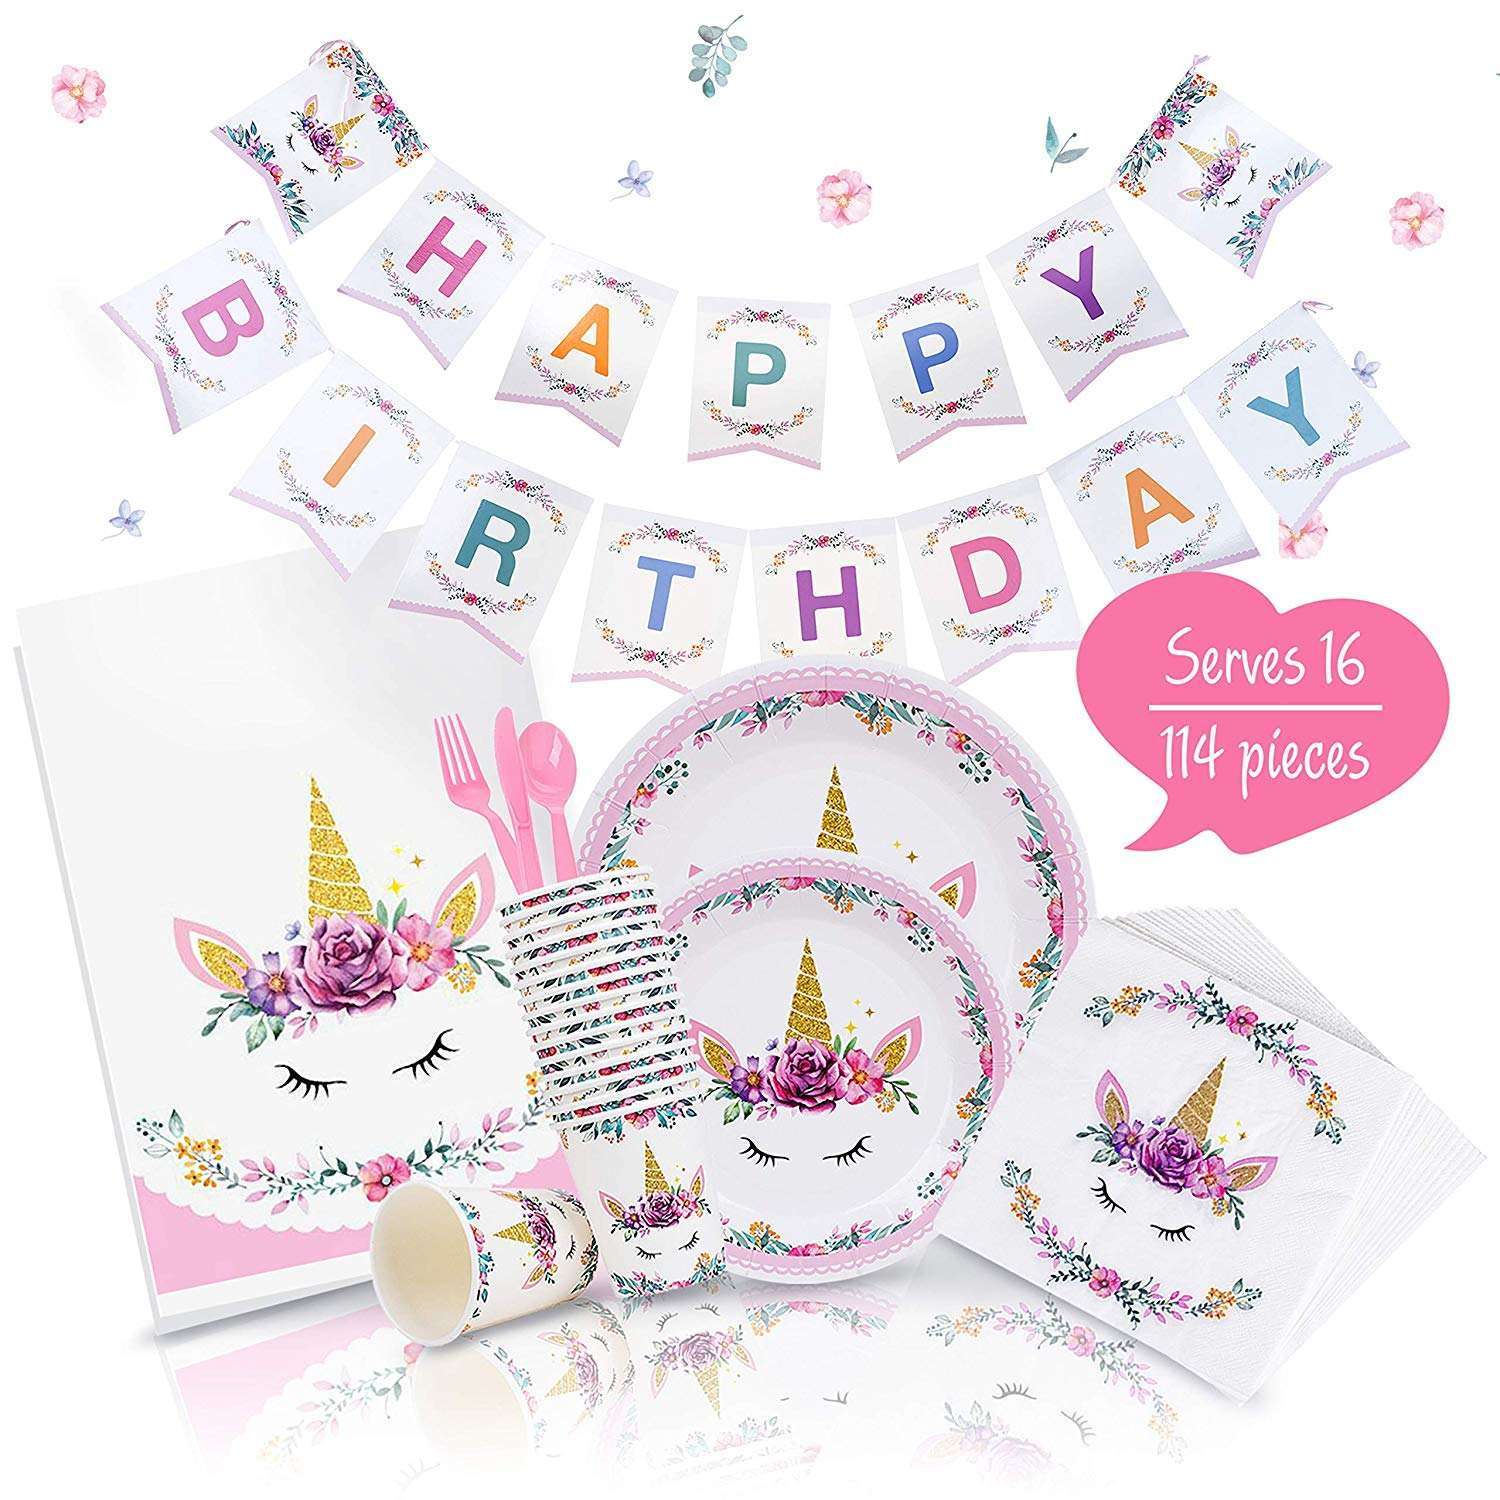 New arrival rainbow unicorn for sale Unicorn Party Supplies | Complete Unicorn Birthday Party Set